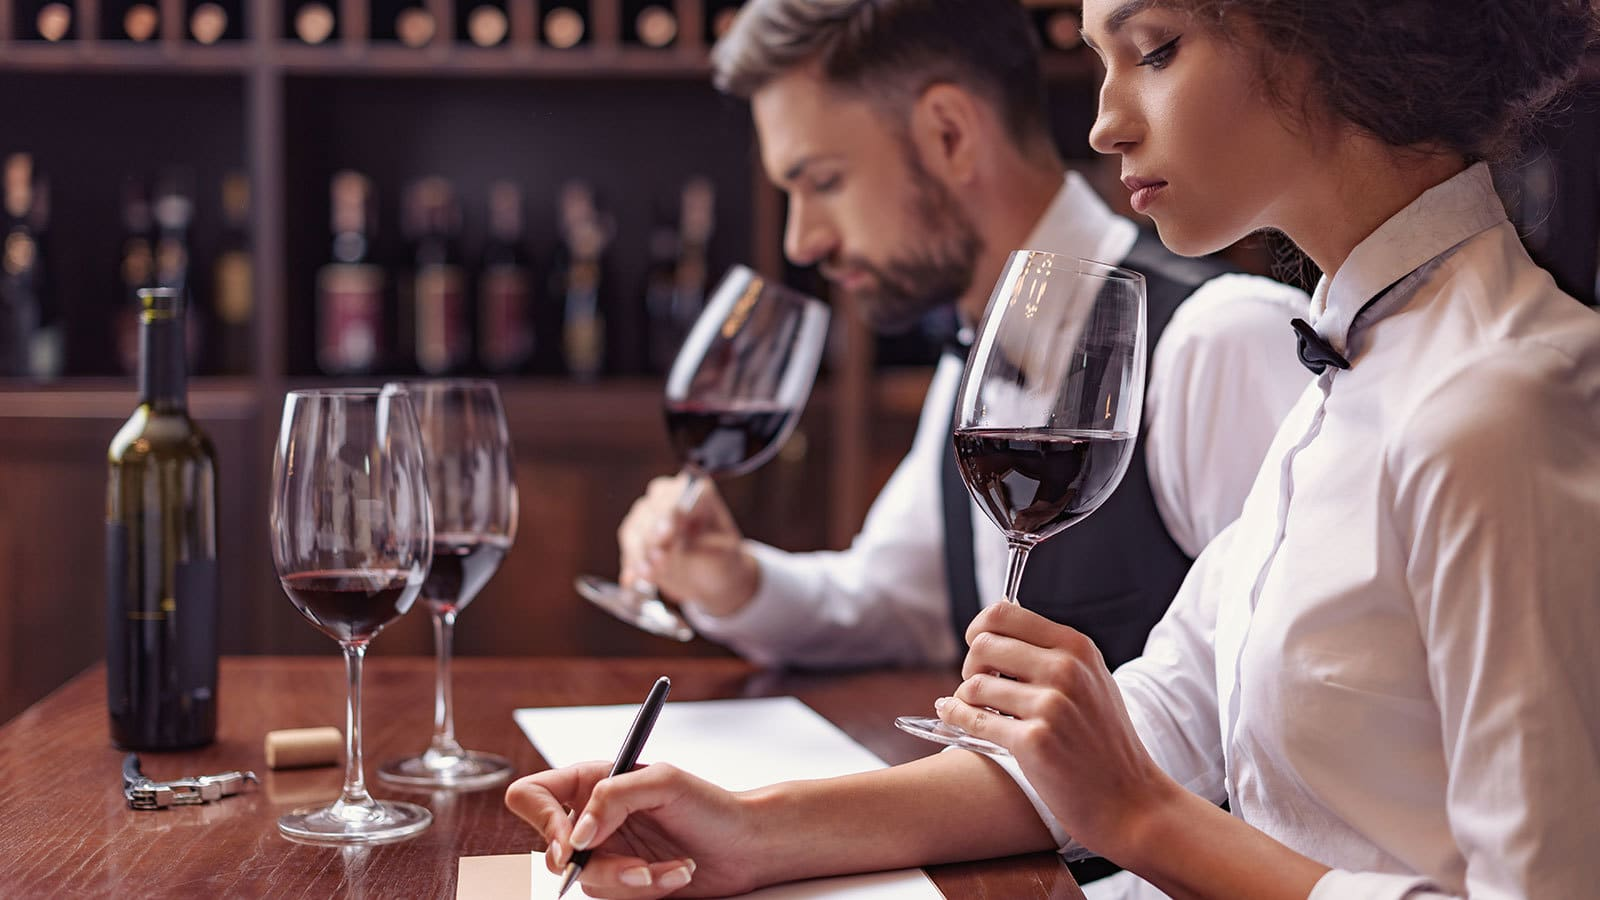 Comment devenir sommelier ?